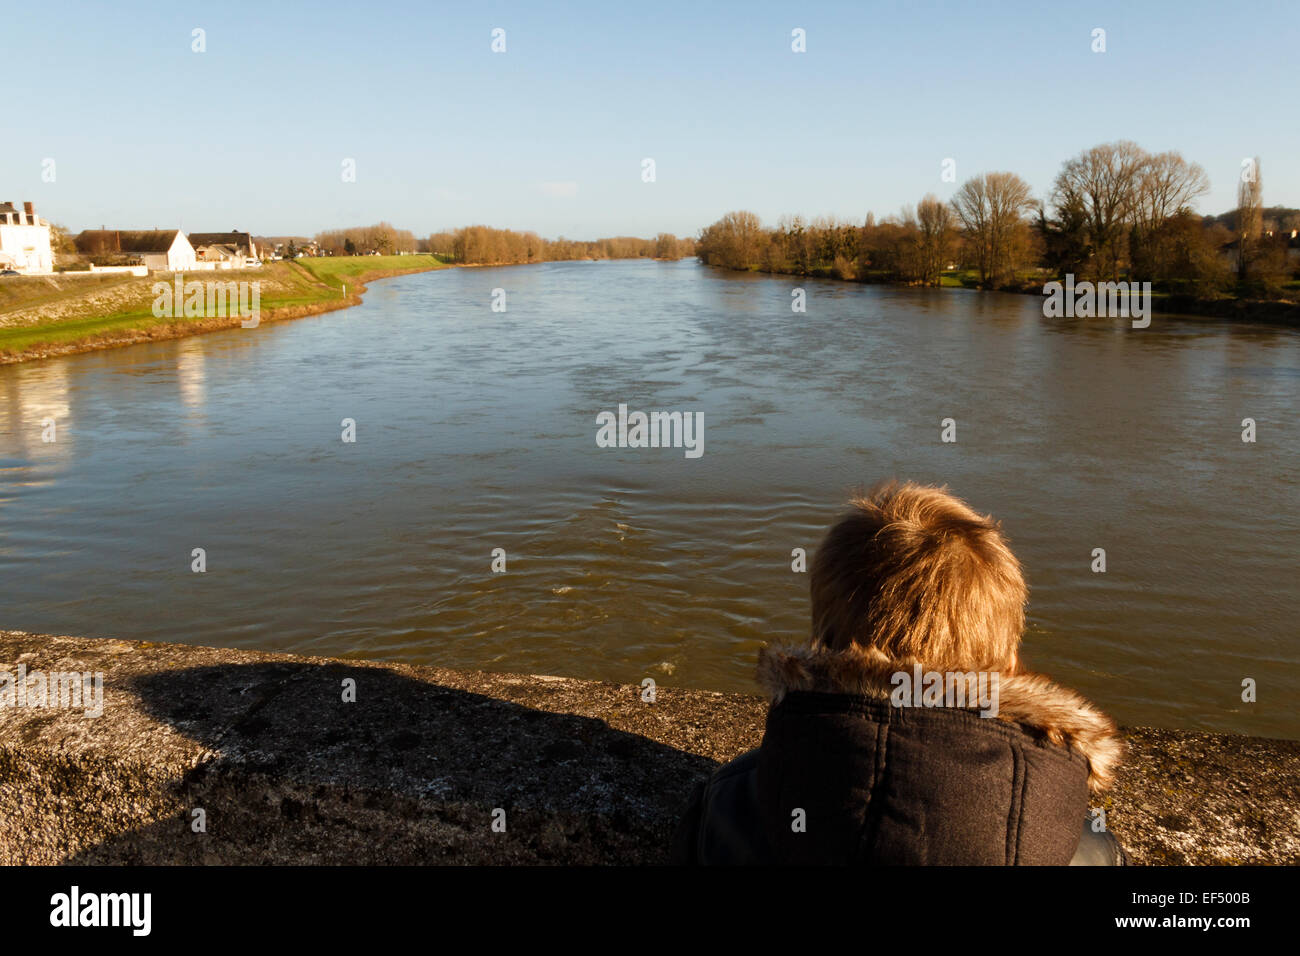 Young boy outdoors looking at water, river Loire, France. - Stock Image